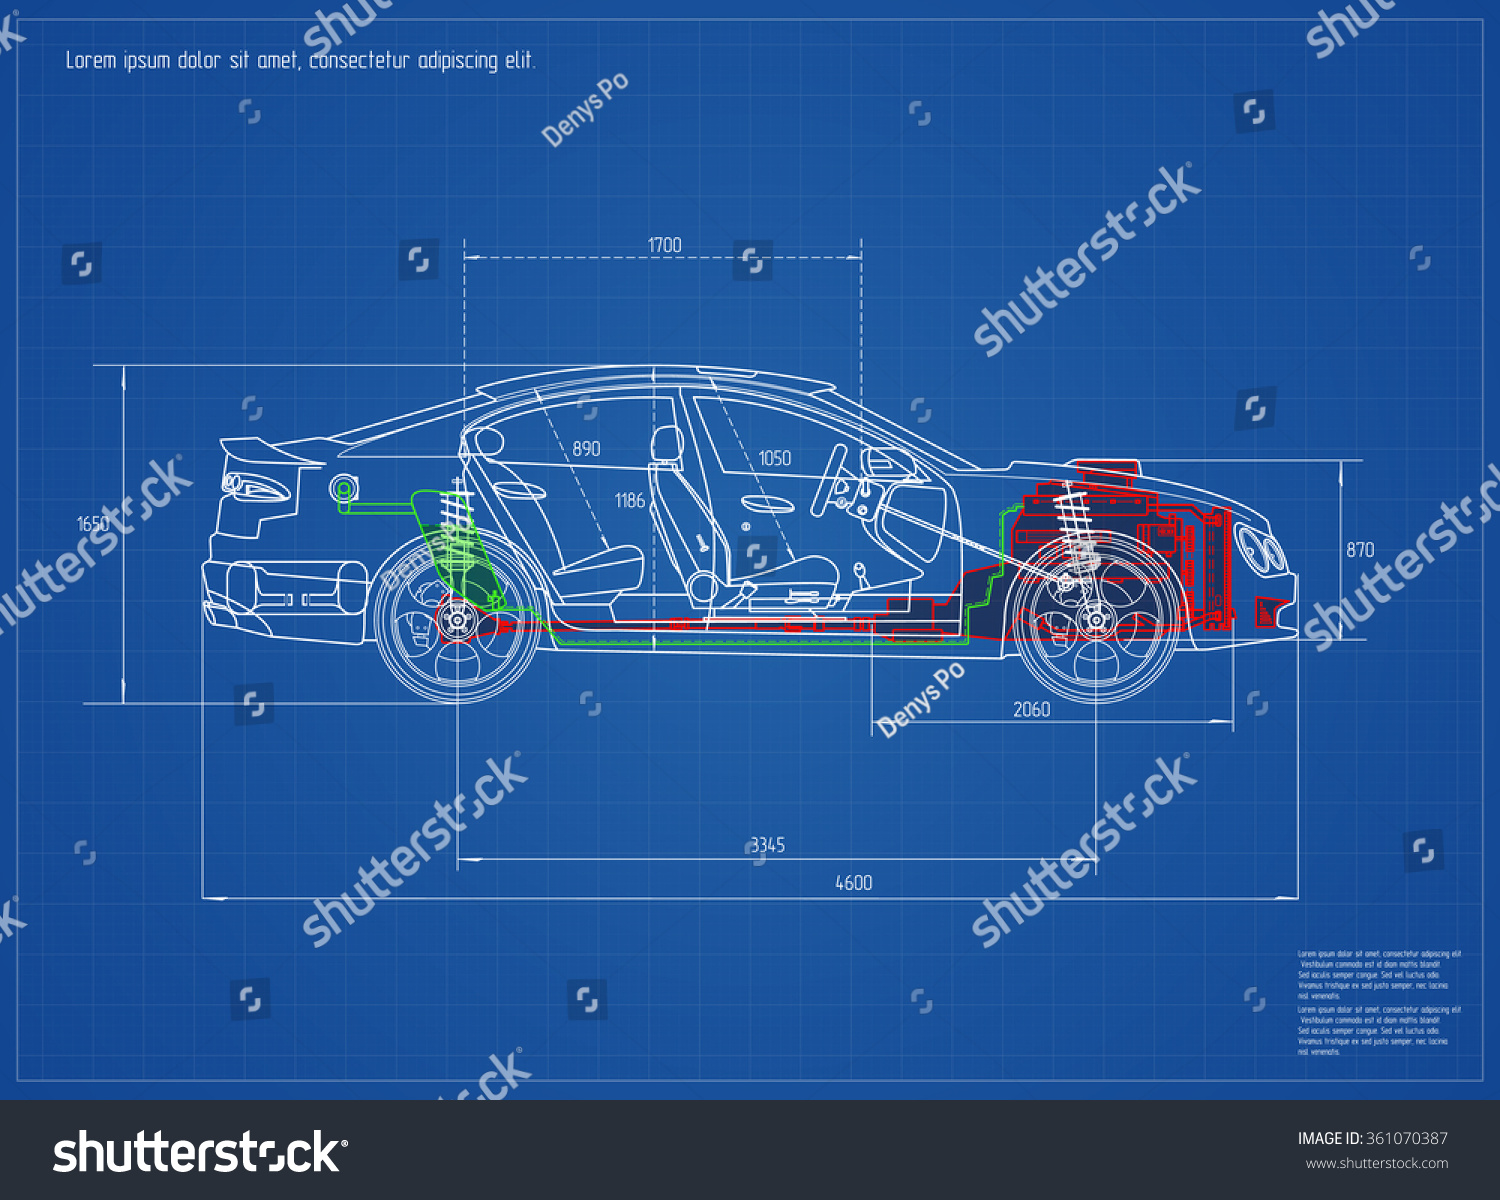 New car blueprint vector illustration eps vectores en stock new car blueprint vector illustration eps 10 malvernweather Image collections